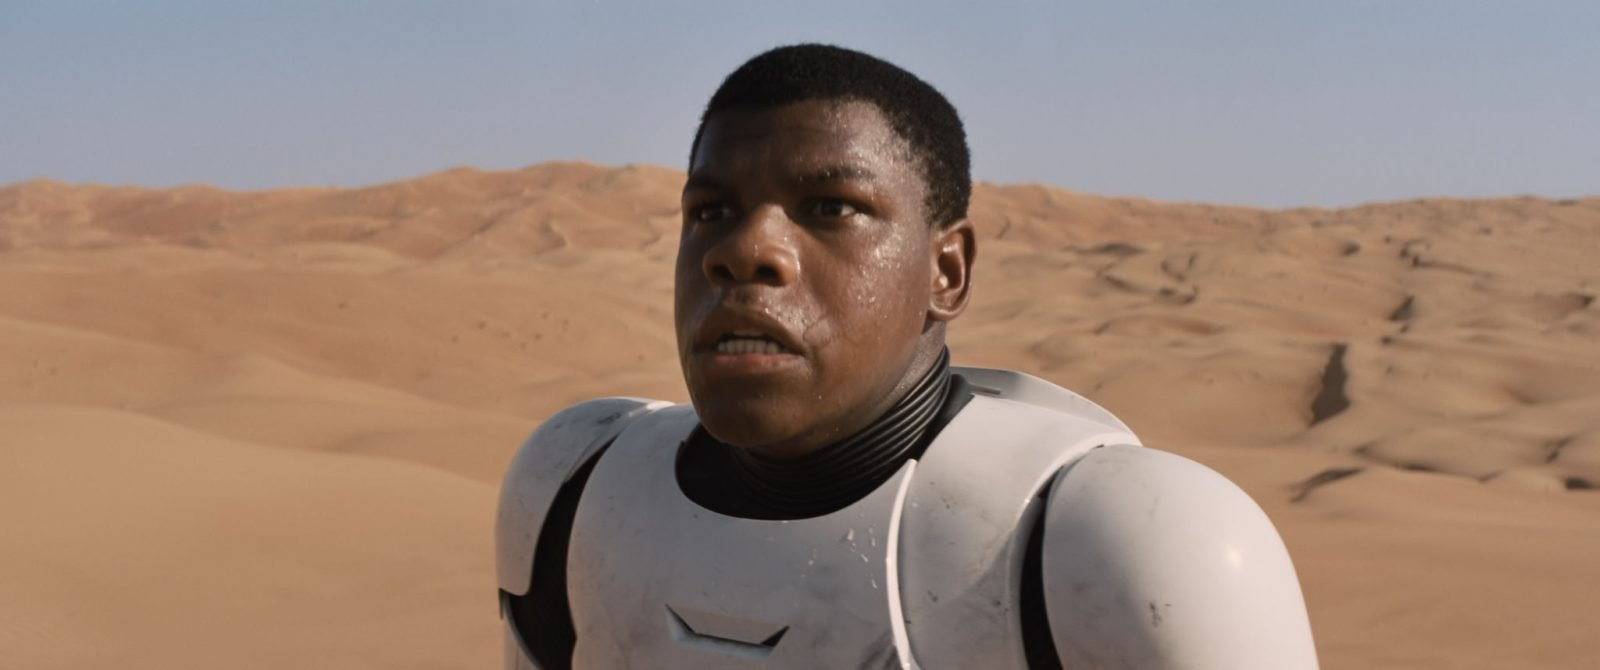 Star Wars VII The Force Awakens 37 - Finn in stormtrooper armor on Jakku